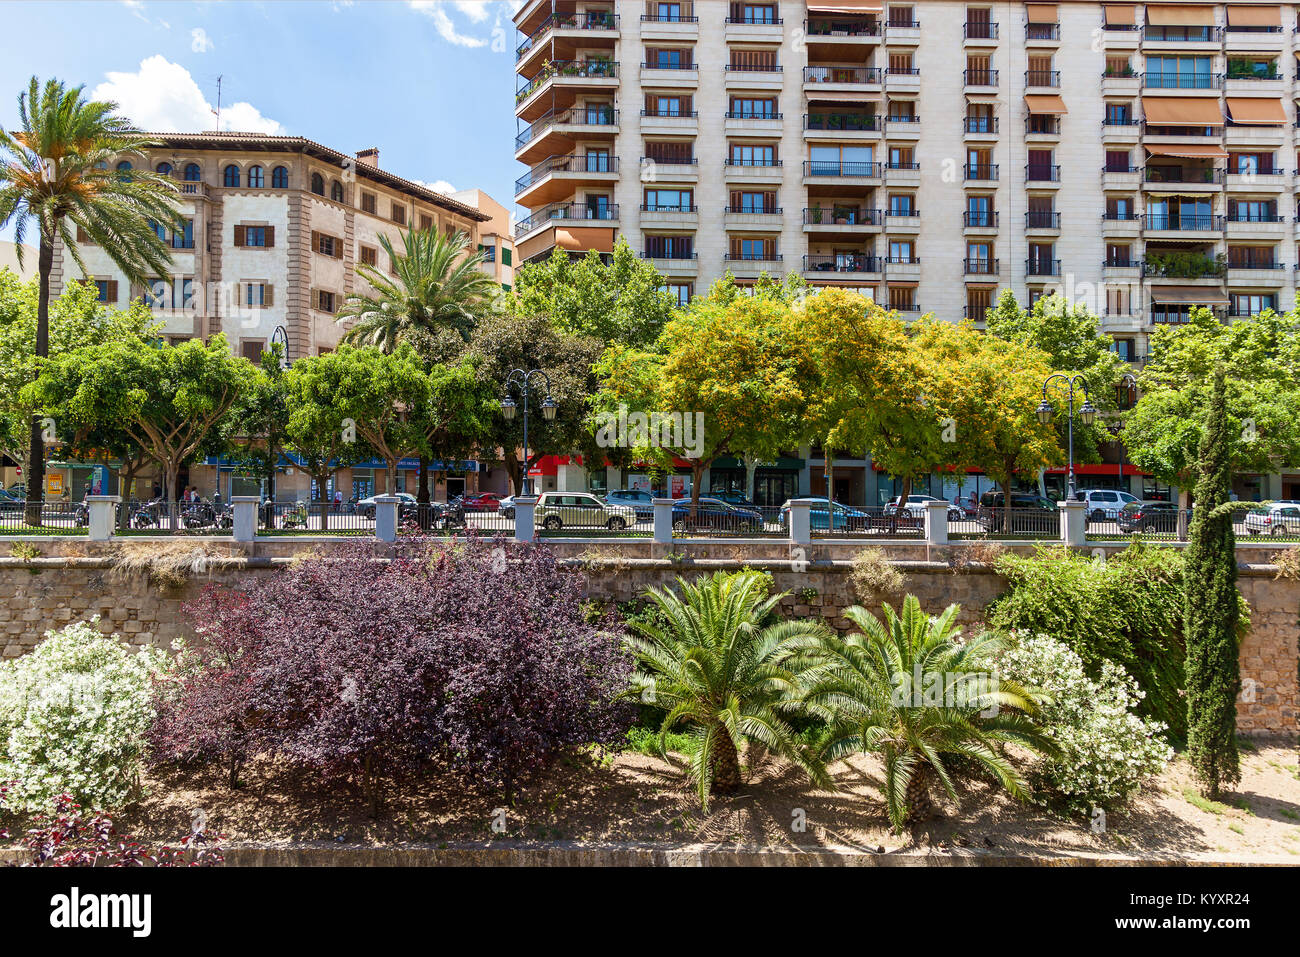 Palma de Mallorca, at home. - Stock Image